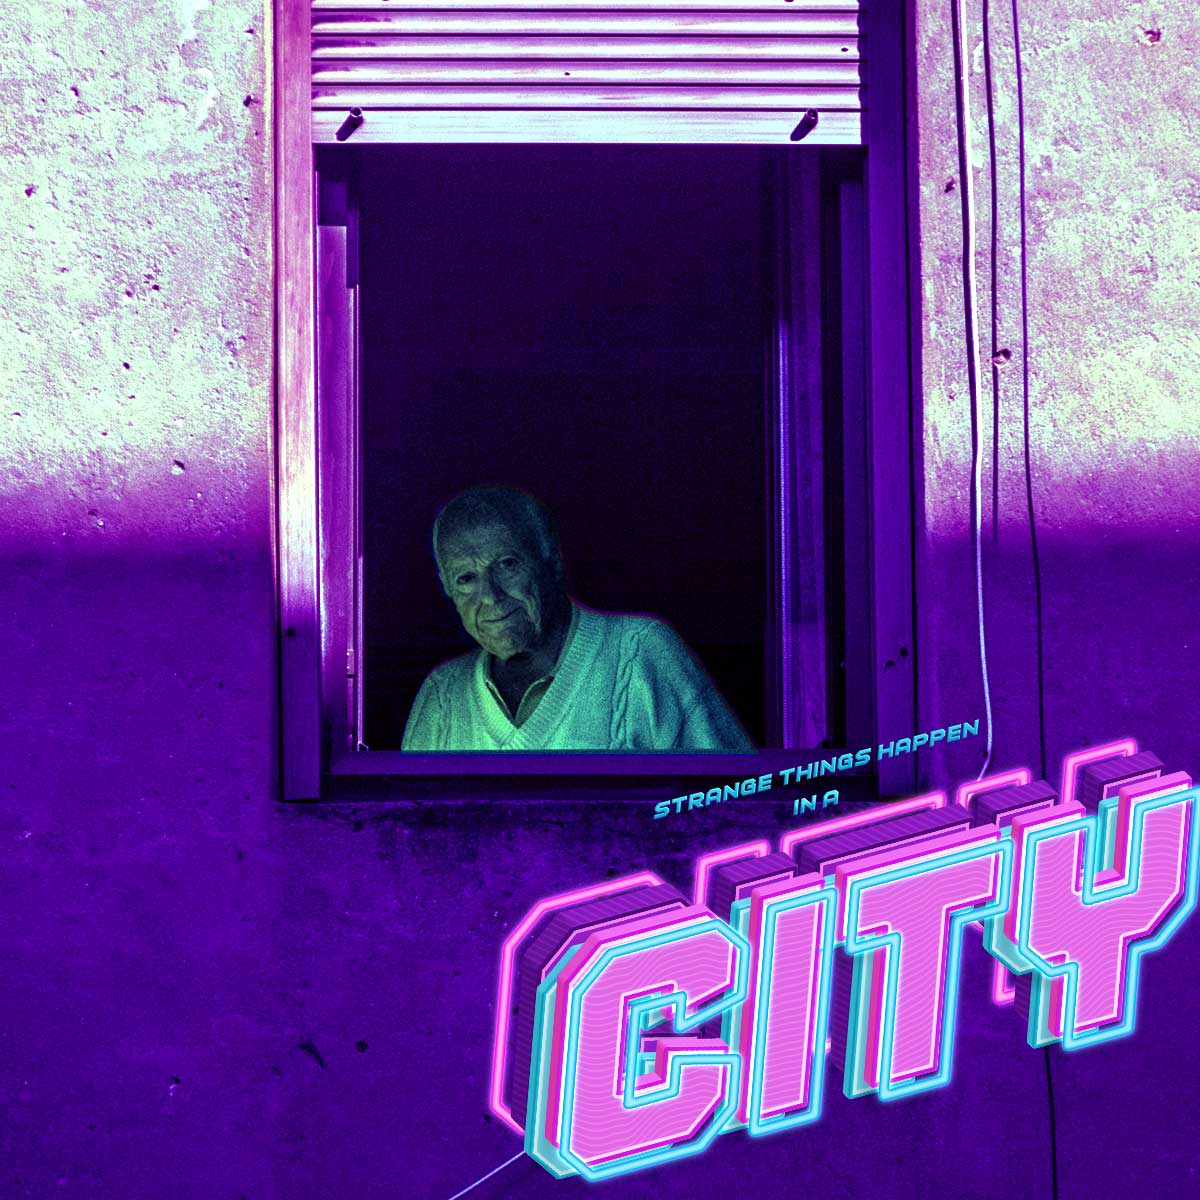 """A man stares out of a window and smiles. A logo to the bottom right says """"Strange things happen in a city"""" in a retwowave style."""